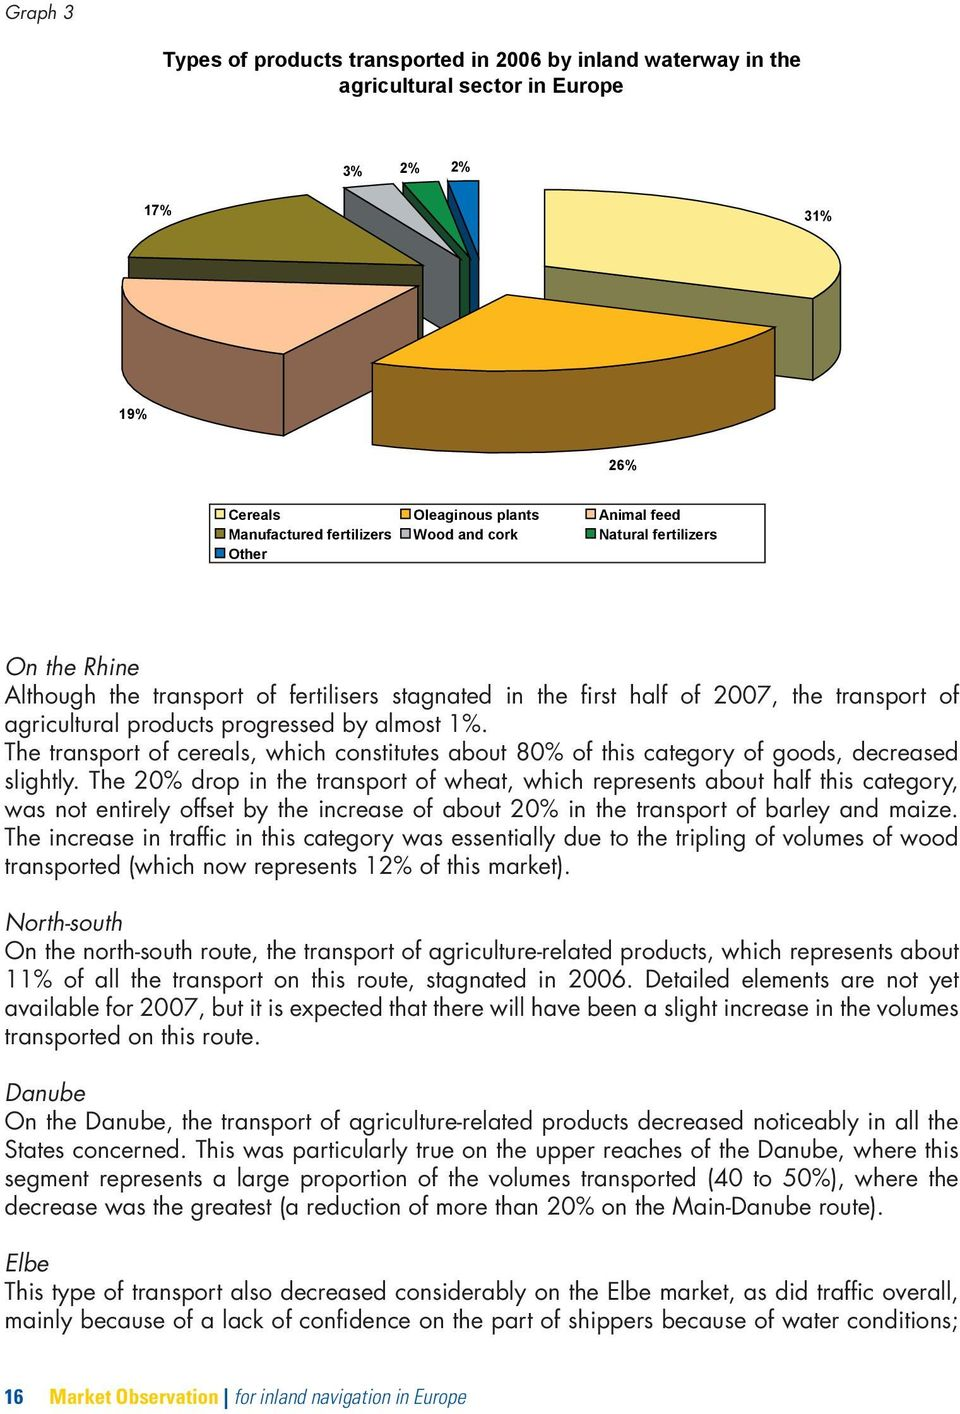 The transport of cereals, which constitutes about 80% of this category of goods, decreased slightly.